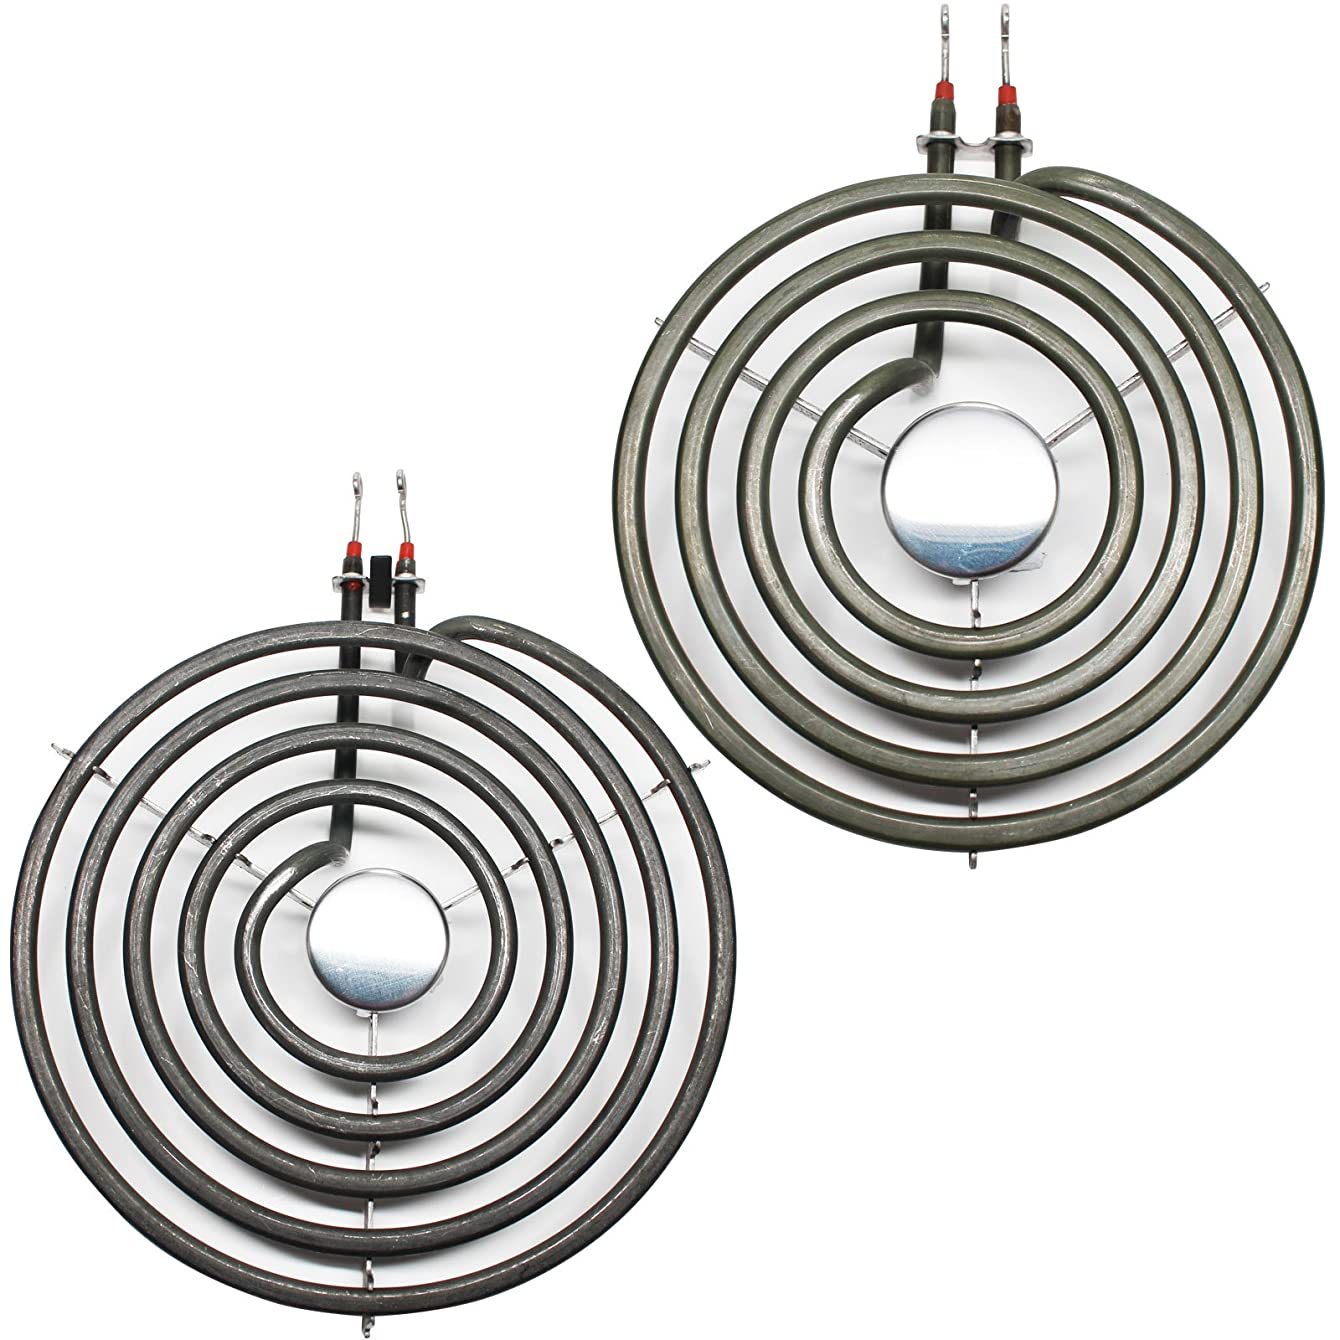 Replacement Whirlpool RS675PXGT8 8 inch 5 Turns & 6 inch 4 Turns Surface Burner Elements - Compatible Whirlpool 9761345 & 660532 Heating Element for Range, Stove & Cooktop